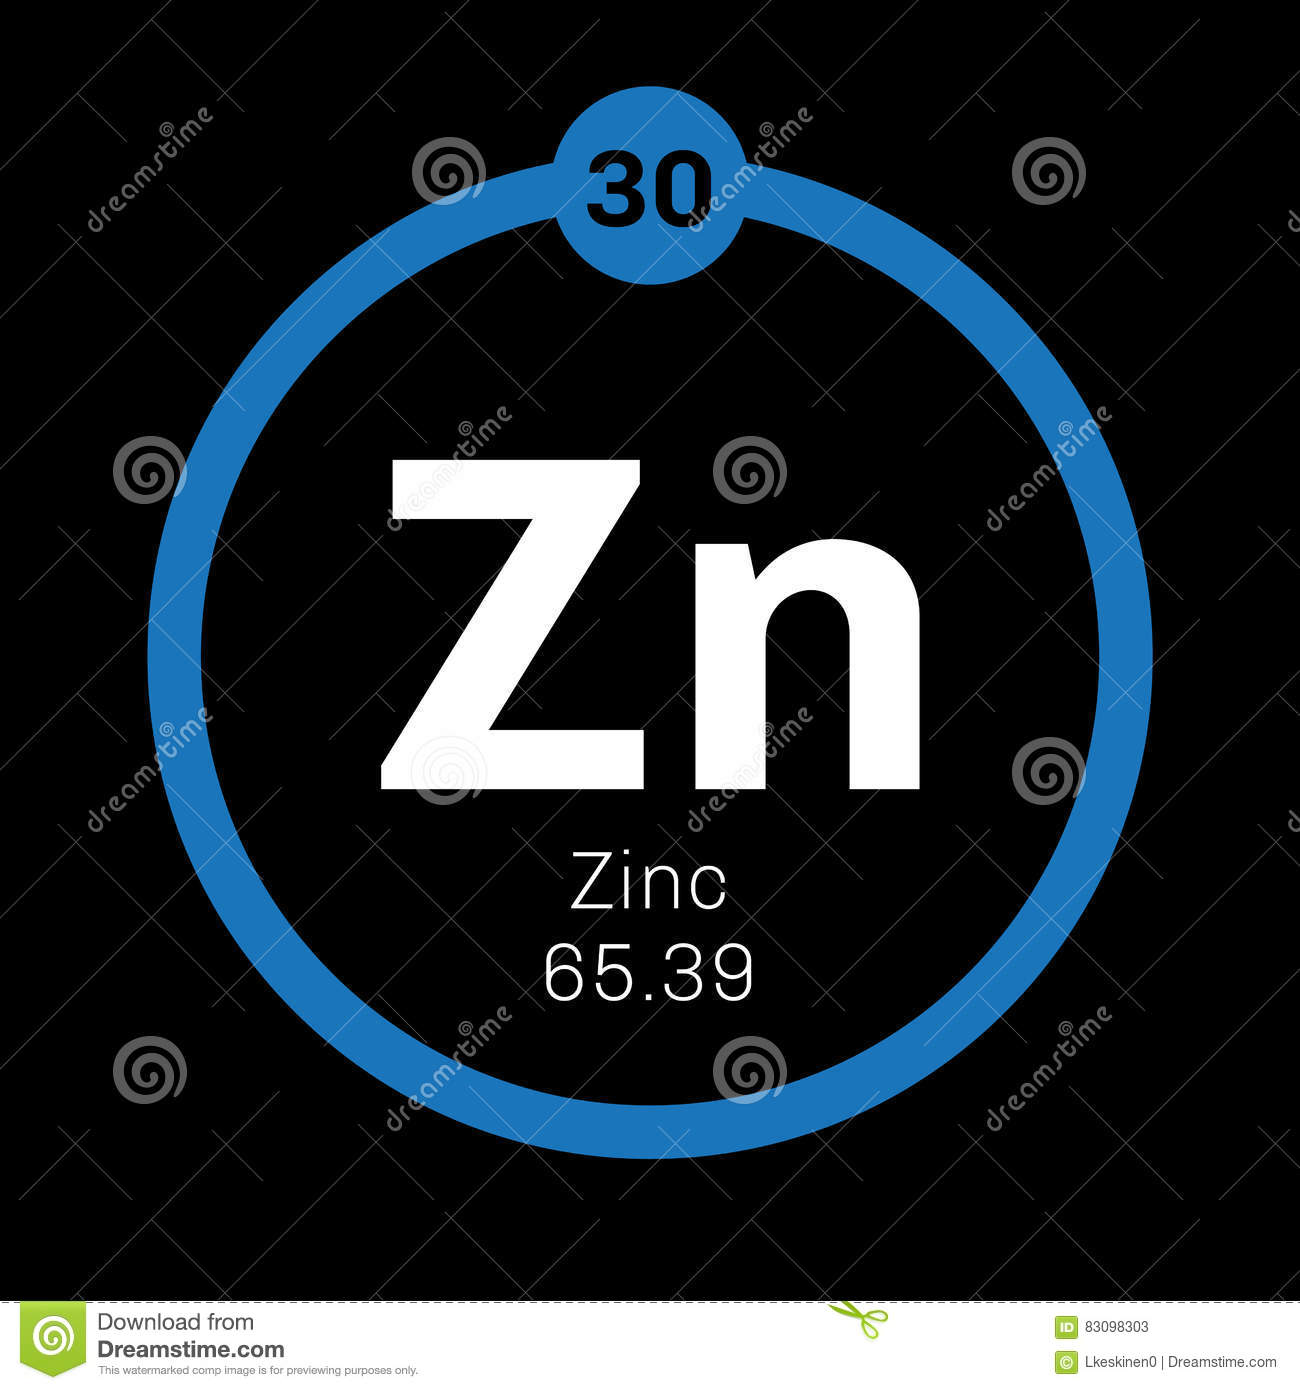 Zinc chemical element stock image image of periods education zinc chemical element common element on earth colored icon with atomic number and atomic weight chemical element of periodic table urtaz Image collections